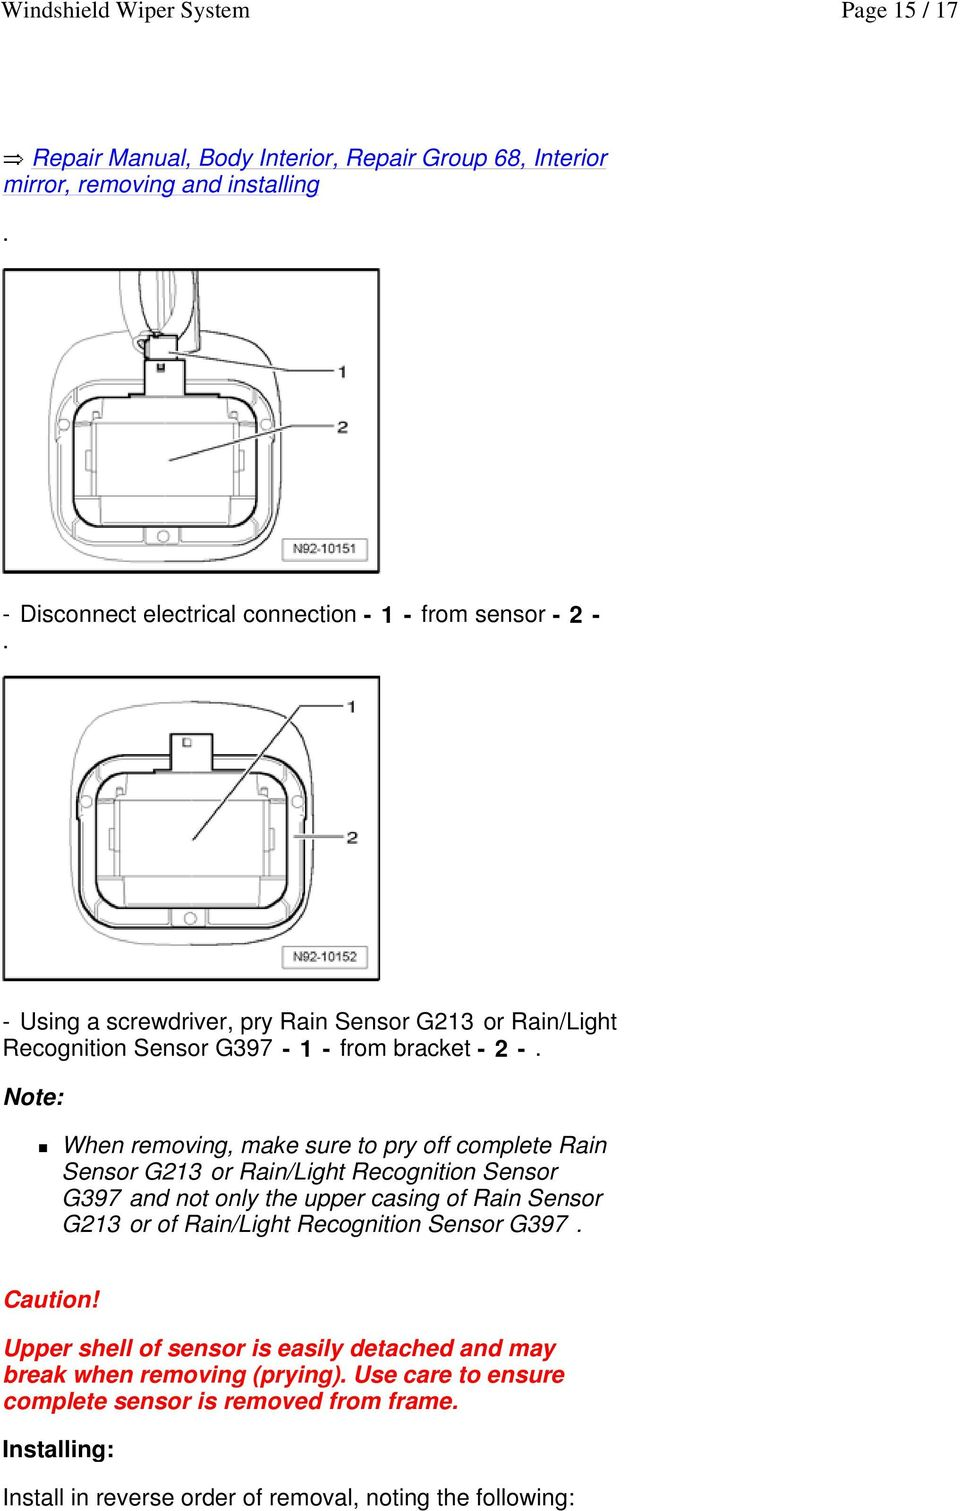 Windshield Wiper System Pdf Footwell Light Wiring Diagram 1999 Gmc Sierra When Removing Make Sure To Pry Off Complete Rain Sensor G213 Or